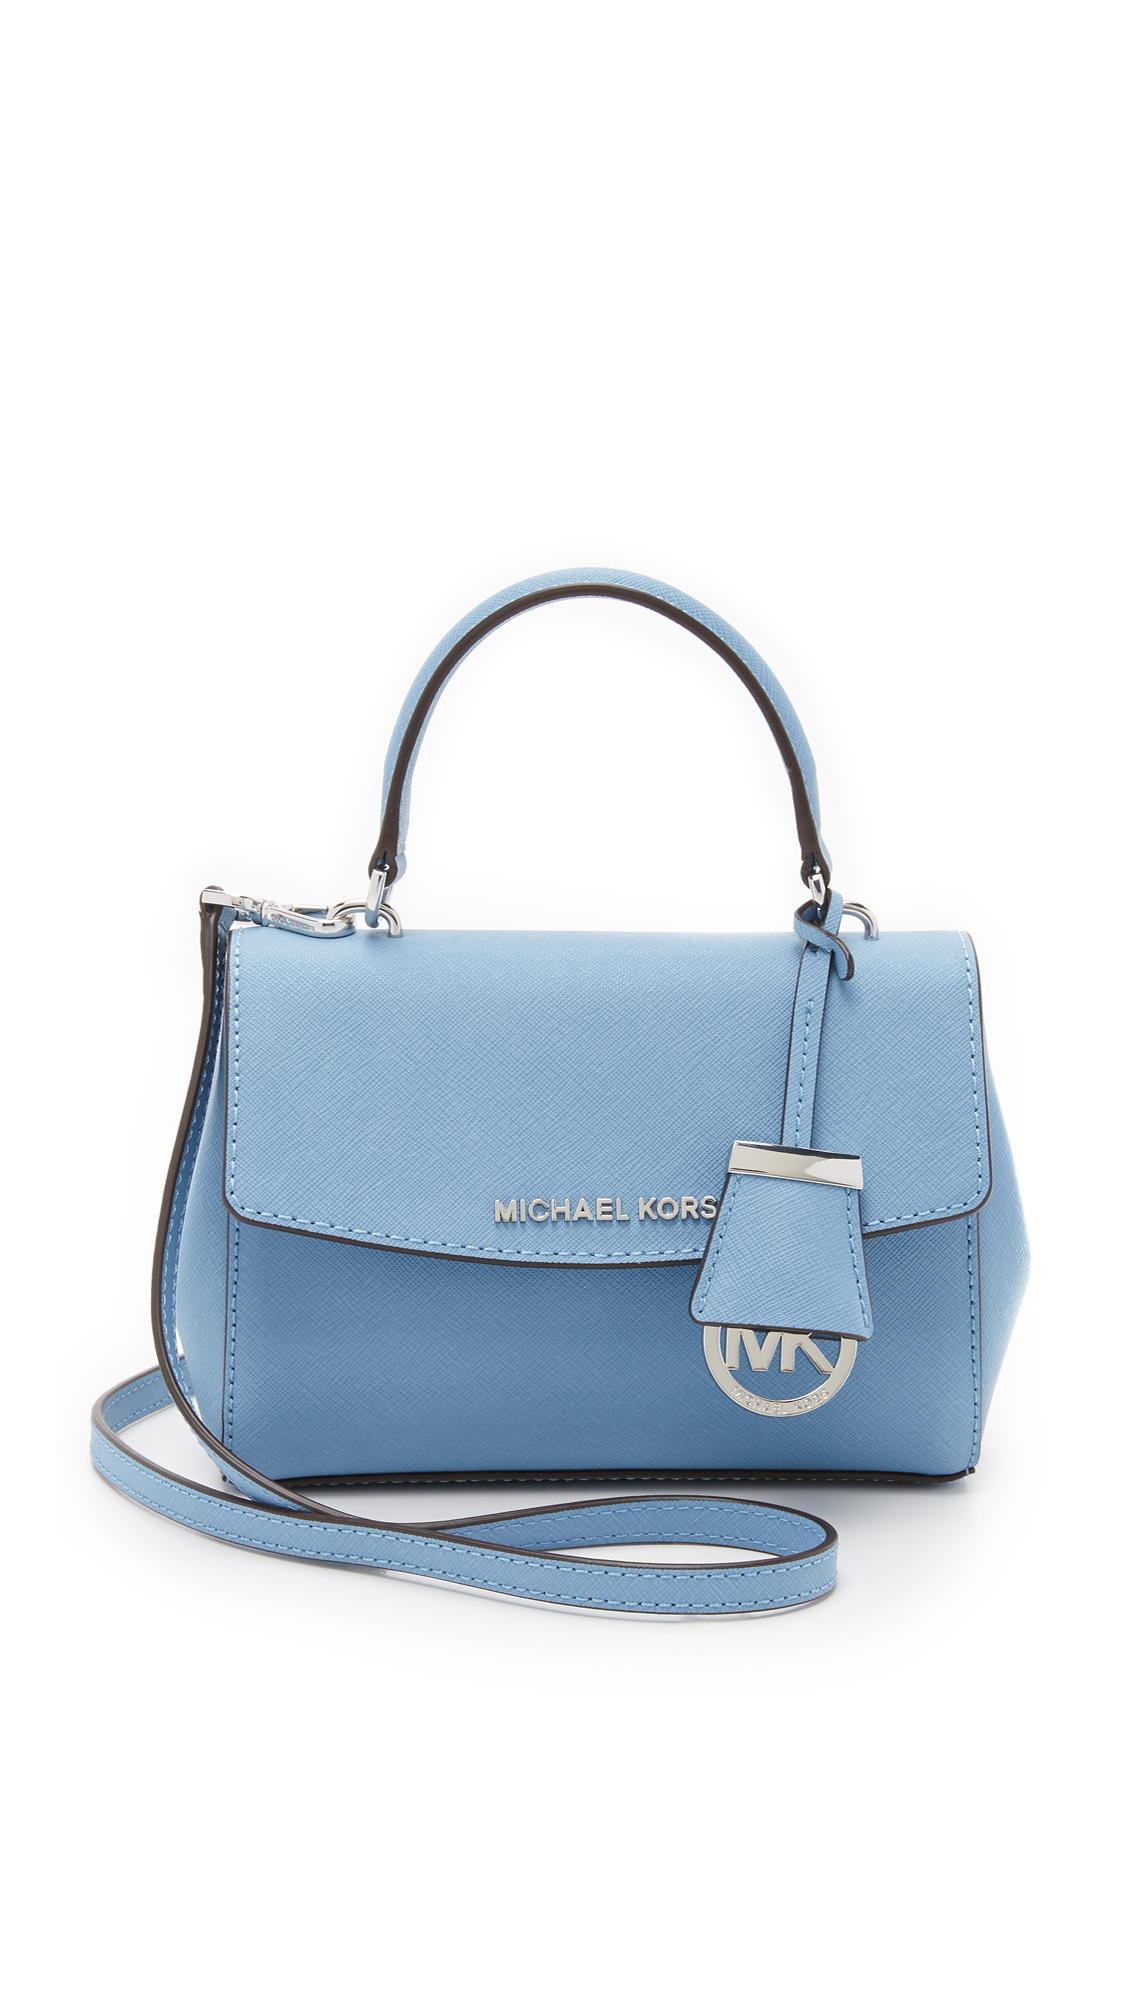 905ad358af94f1 MICHAEL Michael Kors Ava Small Cross Body Bag - Sky in Blue - Lyst